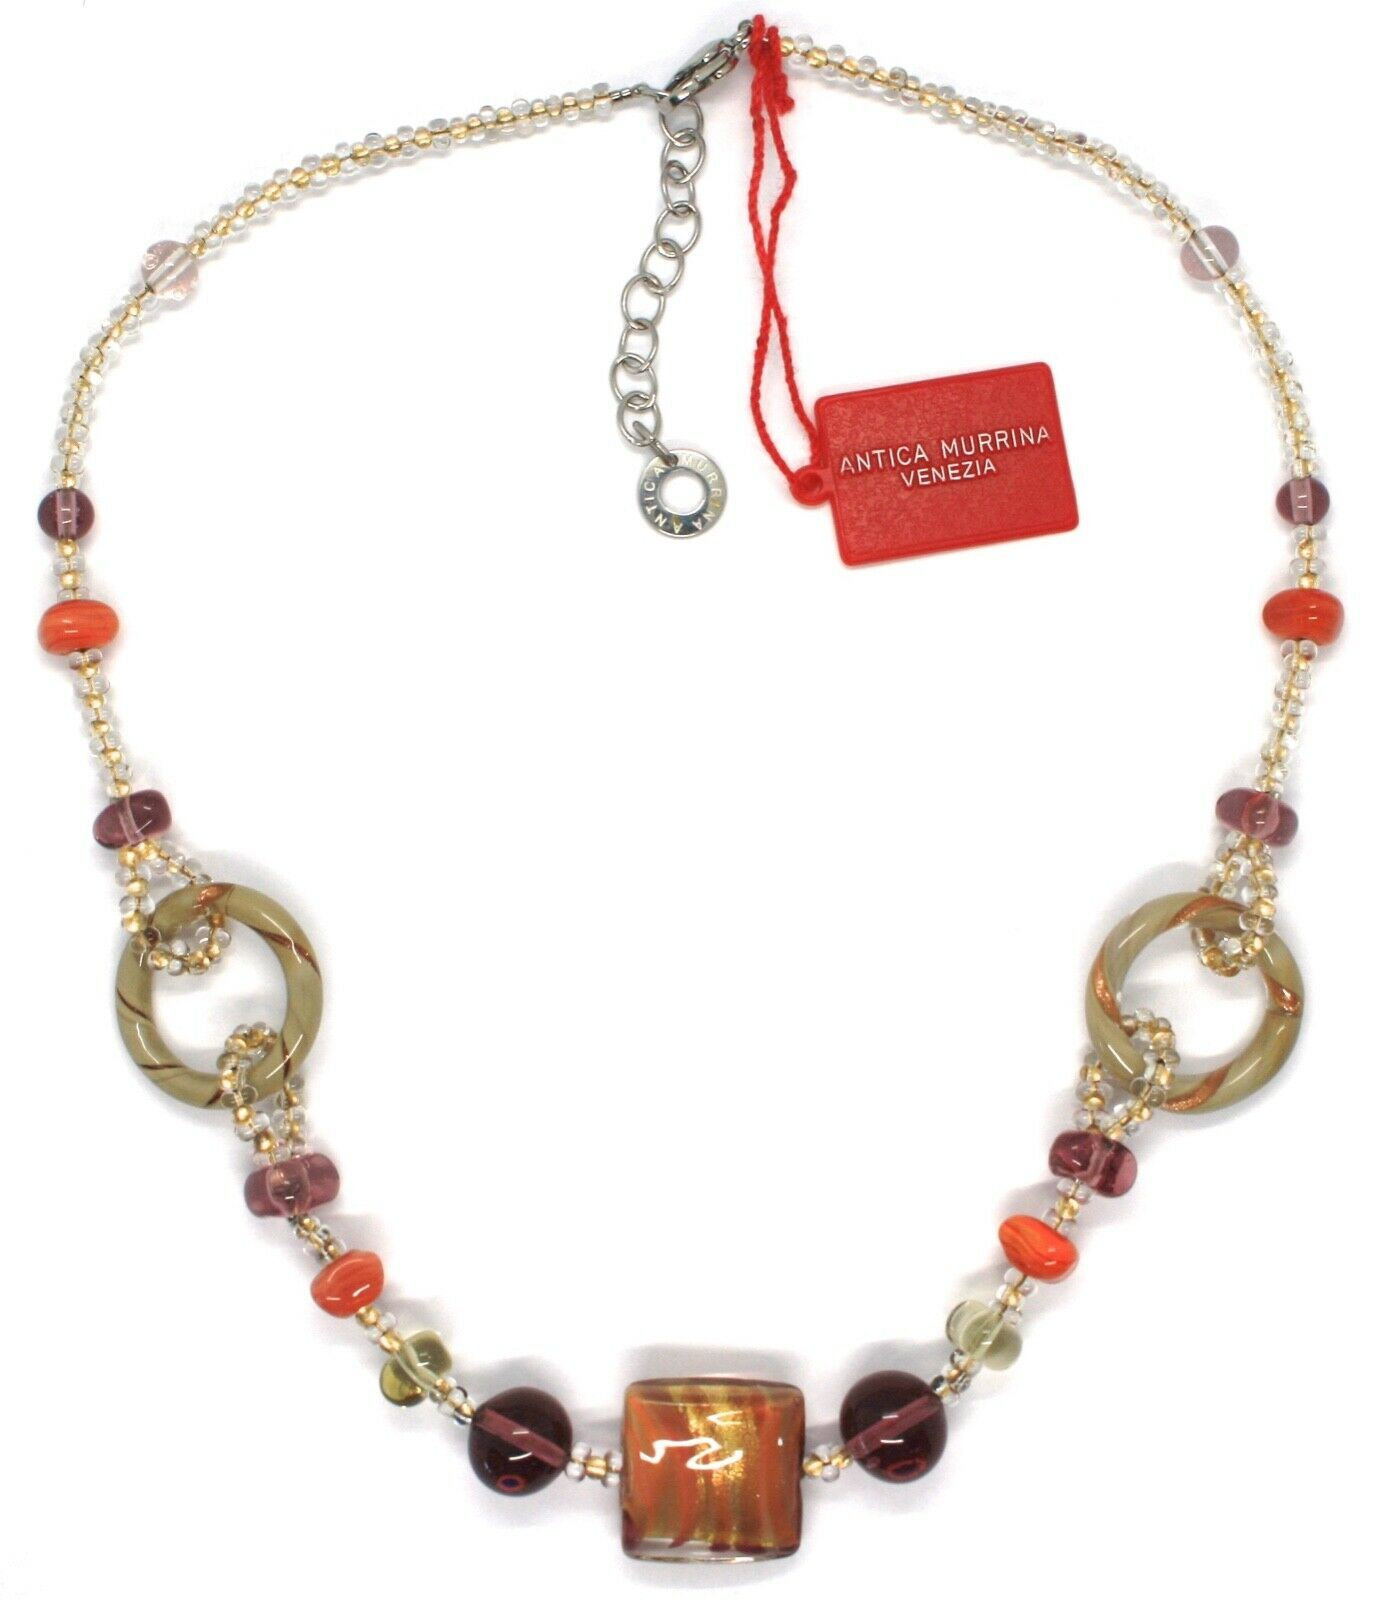 Necklace Antique Murrina,CO666A25,Circles,Squares,Spheres,Orange Glass Murrano